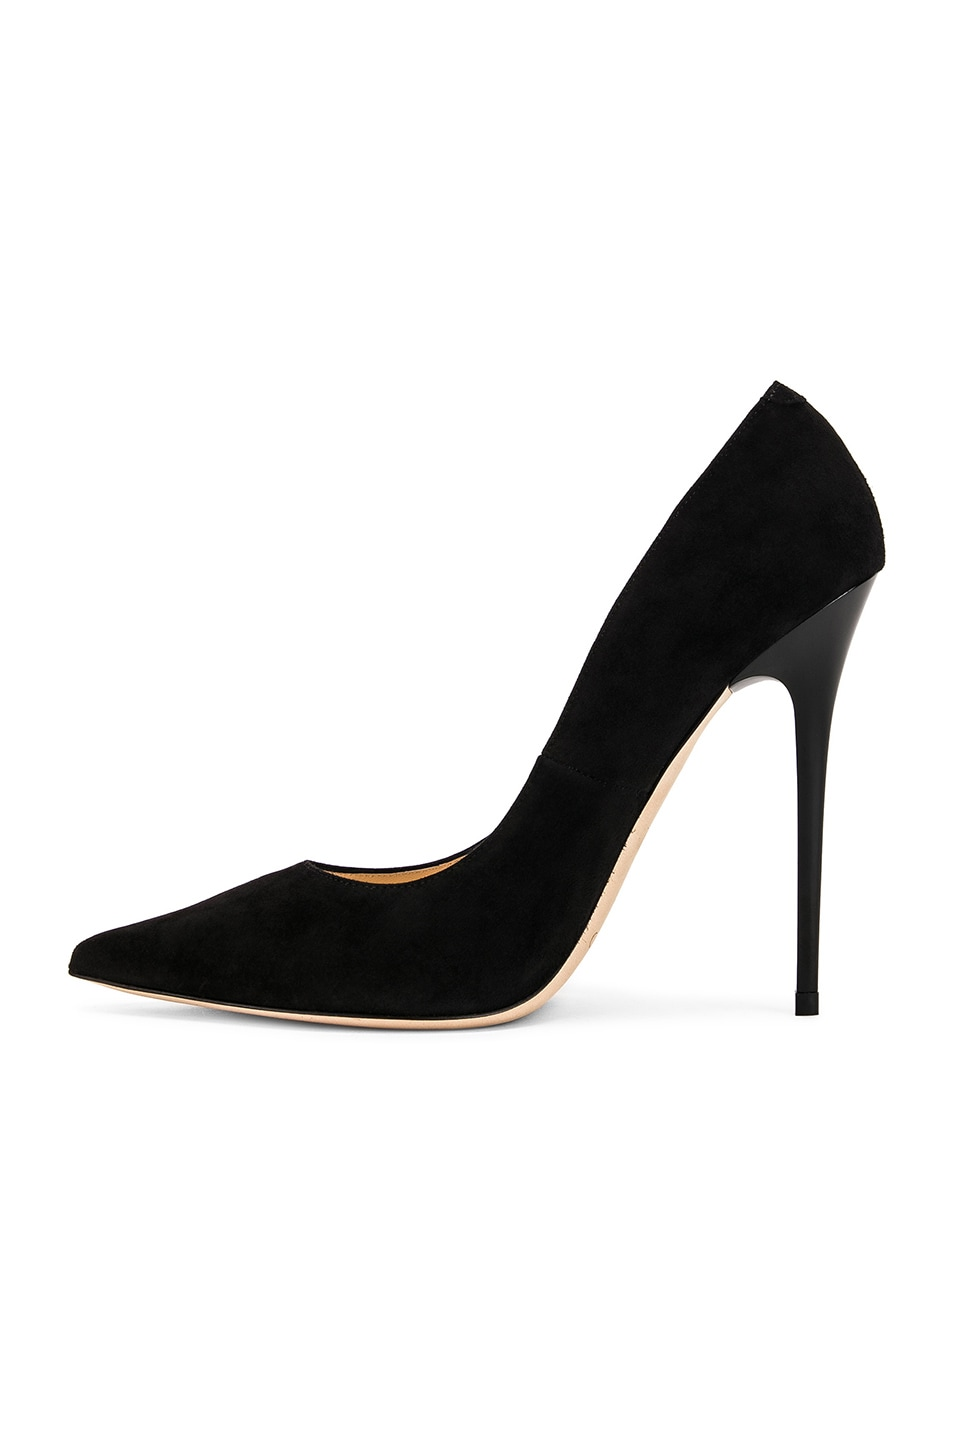 Image 5 of Jimmy Choo Anouk 120 Suede Pumps in Black